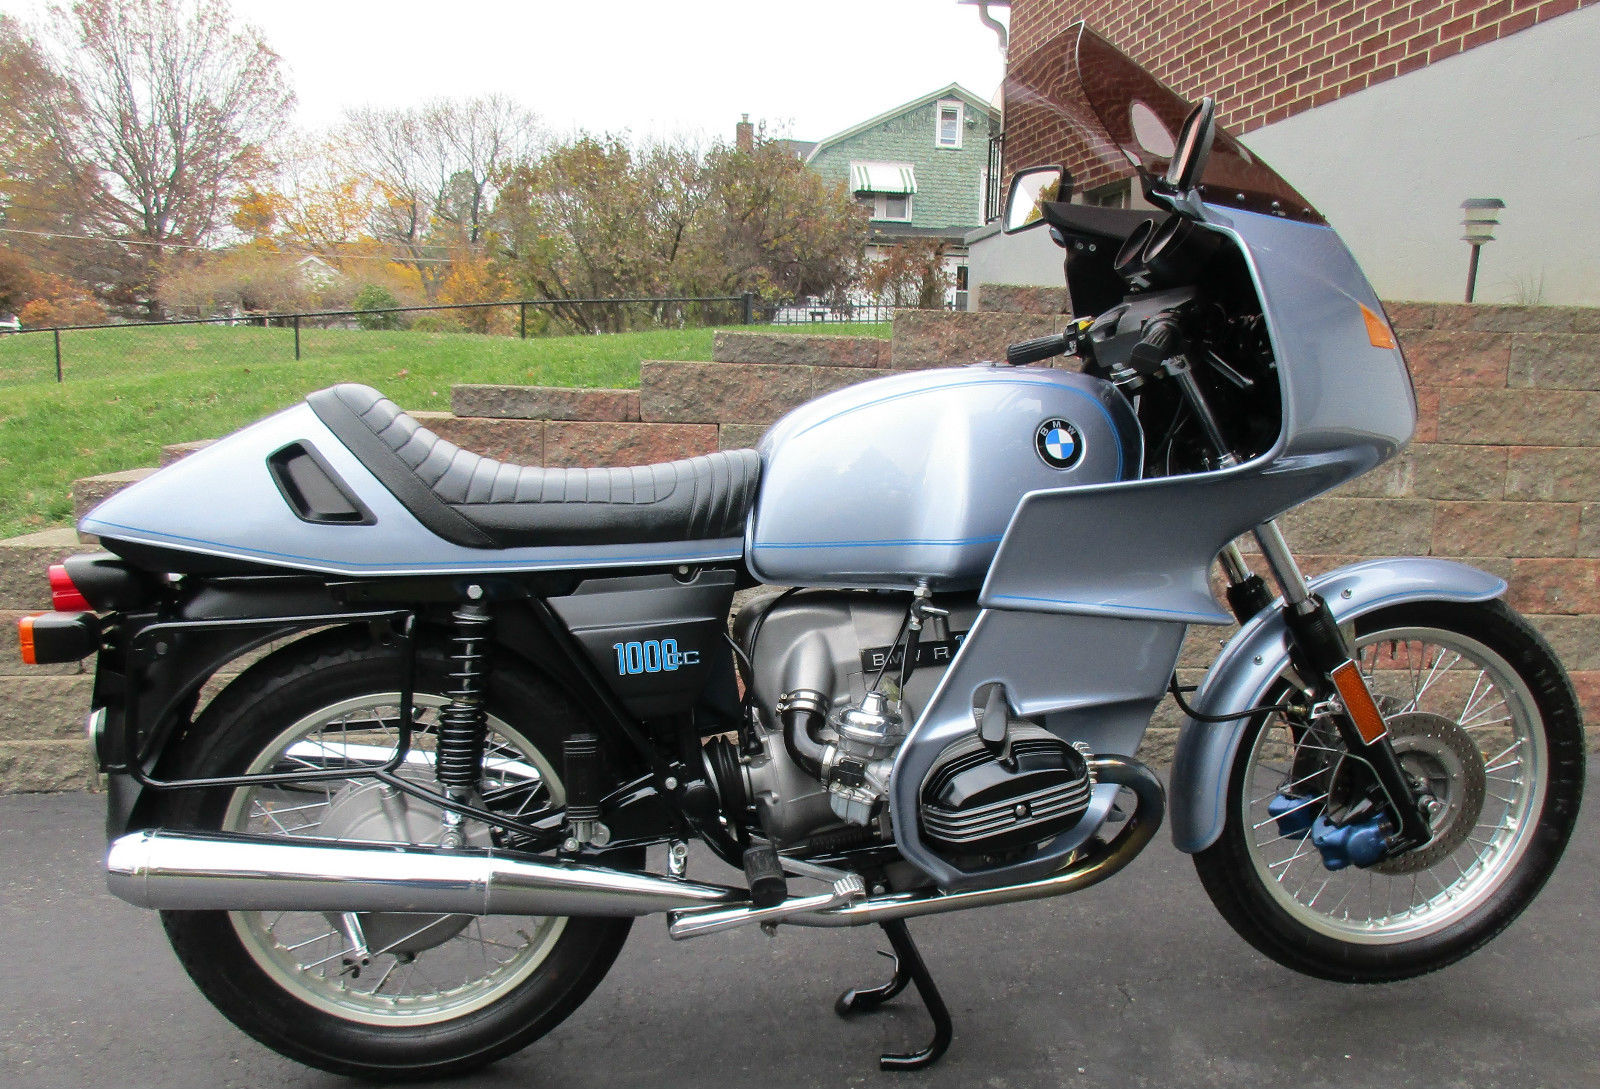 Restored Bmw R100rs 1977 Photographs At Classic Bikes Restored Bikes Restored